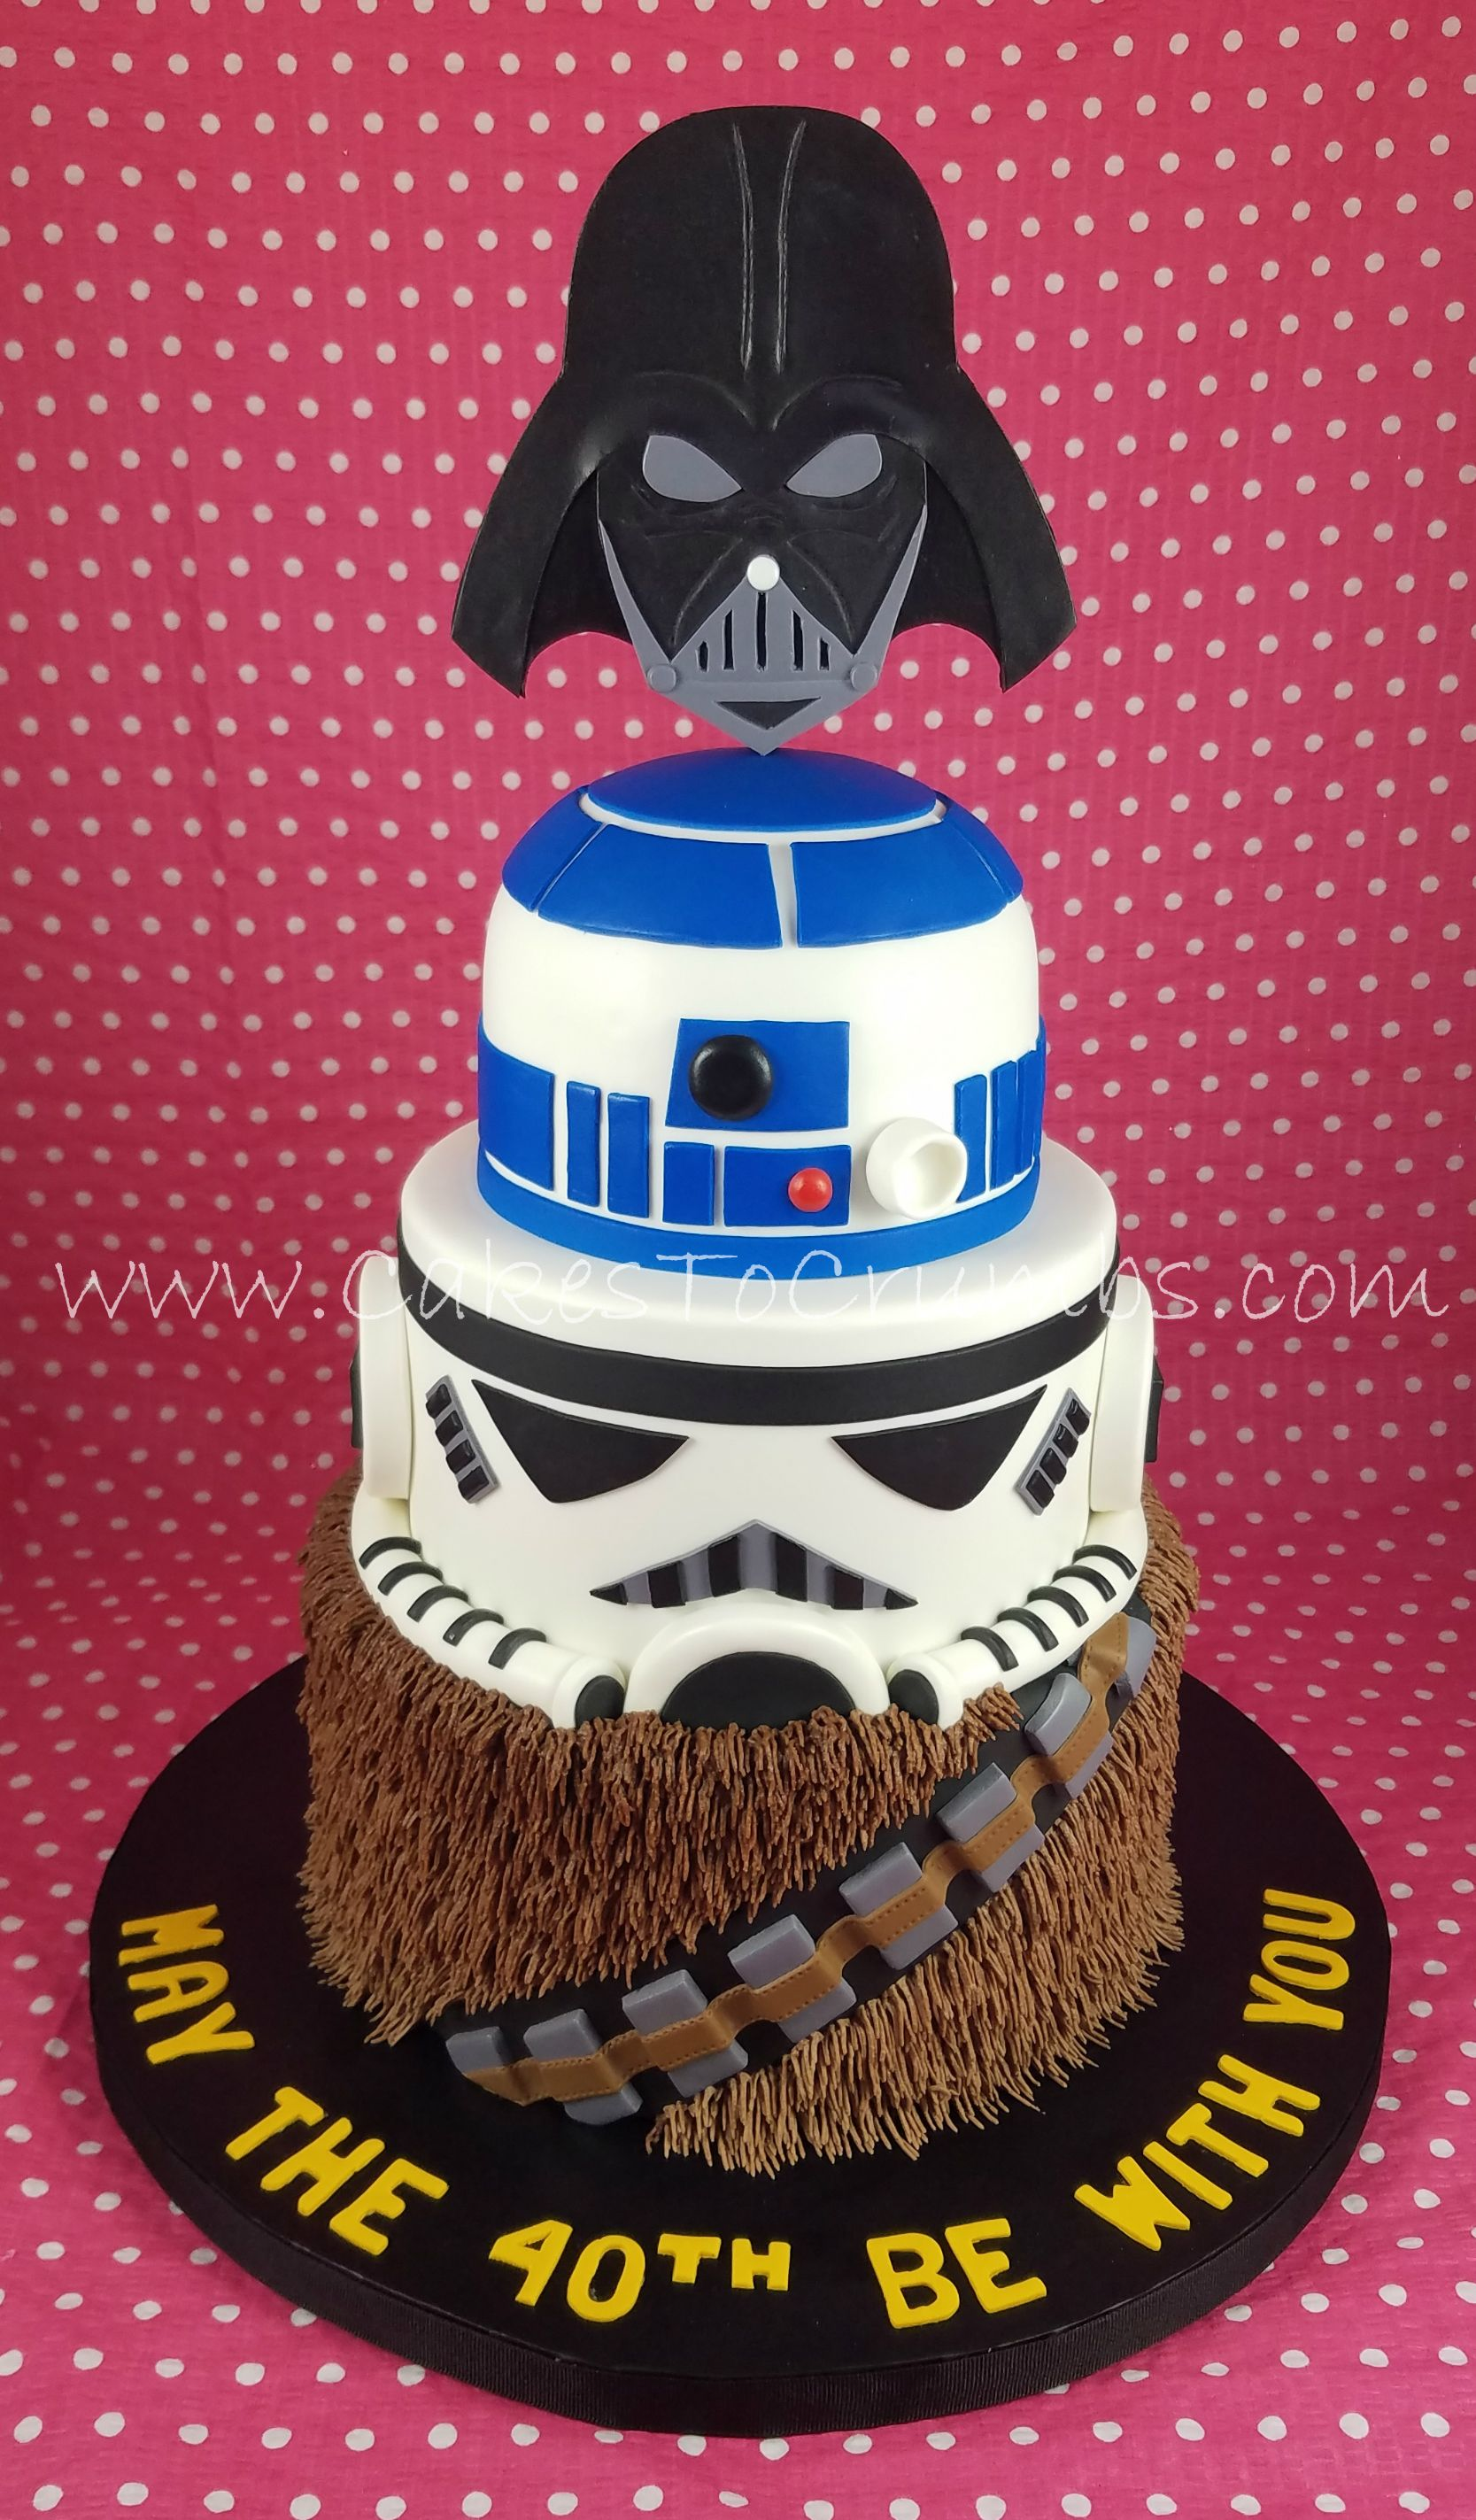 Star Wars 40th Birthday Cake Cake 40th Birthday Cakes